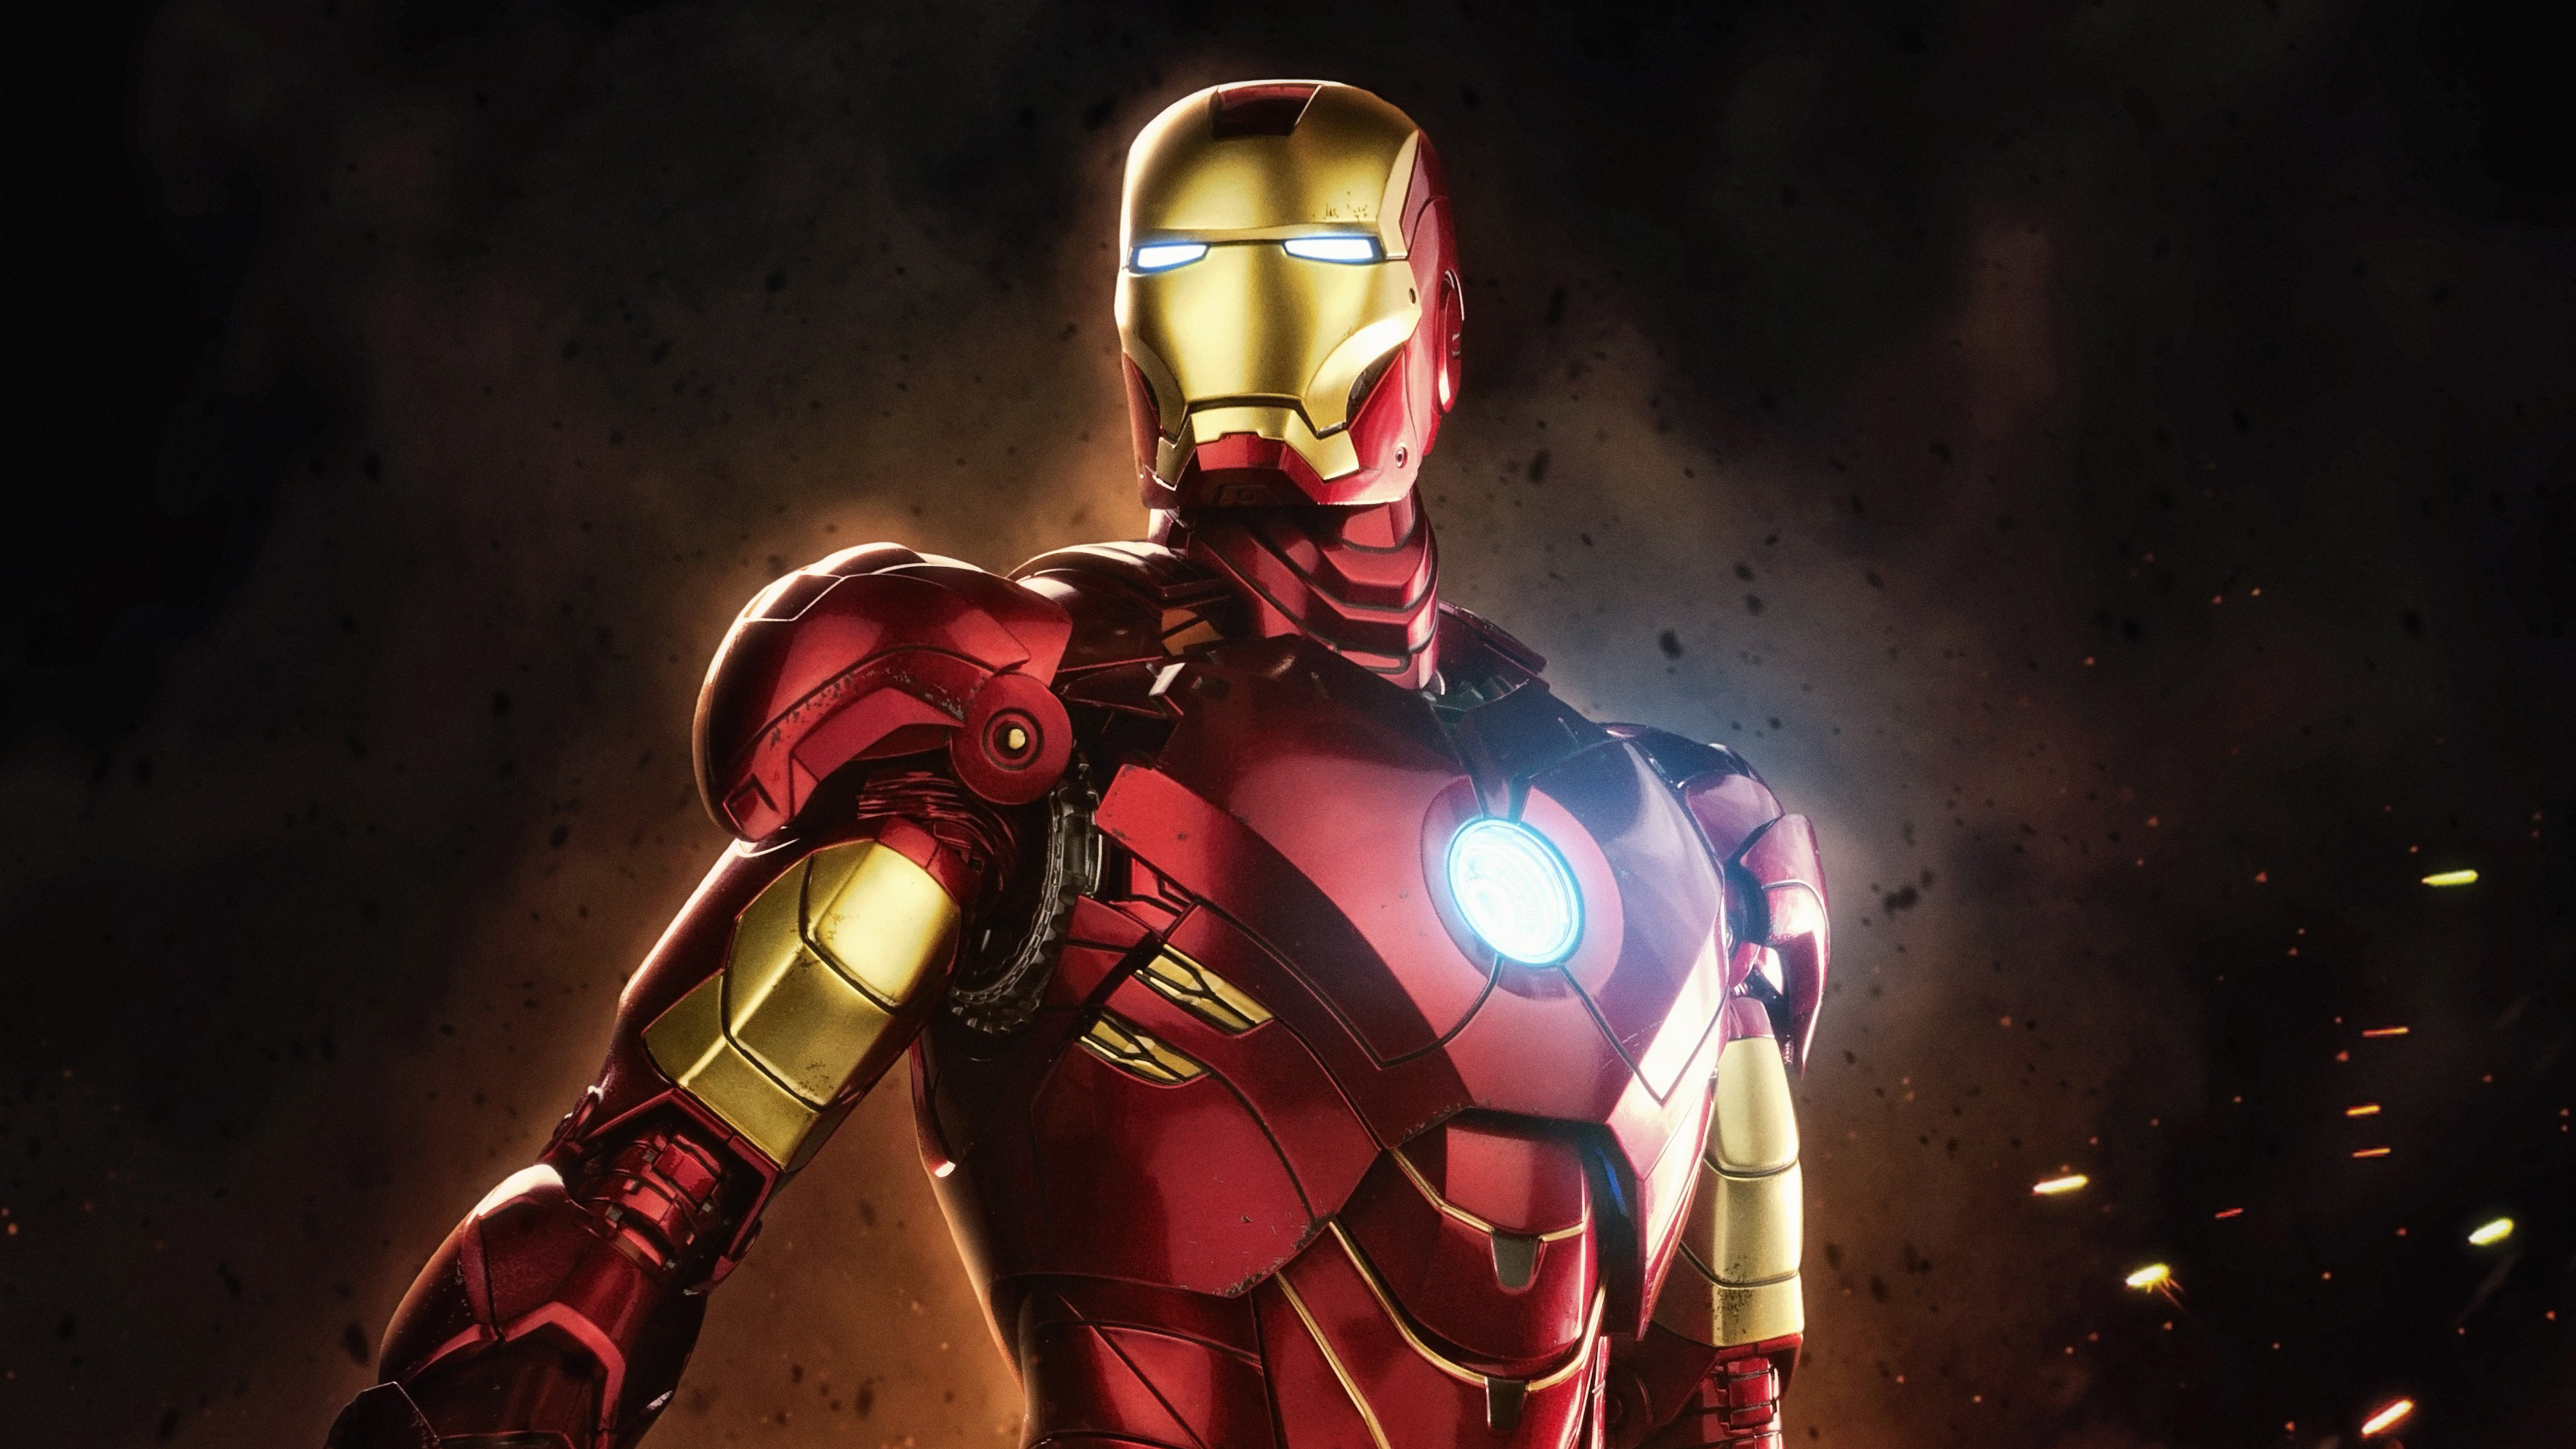 4k iron man 2018 hd superheroes 4k wallpapers images backgrounds photos and pictures - Iron man wallpaper 4k ...